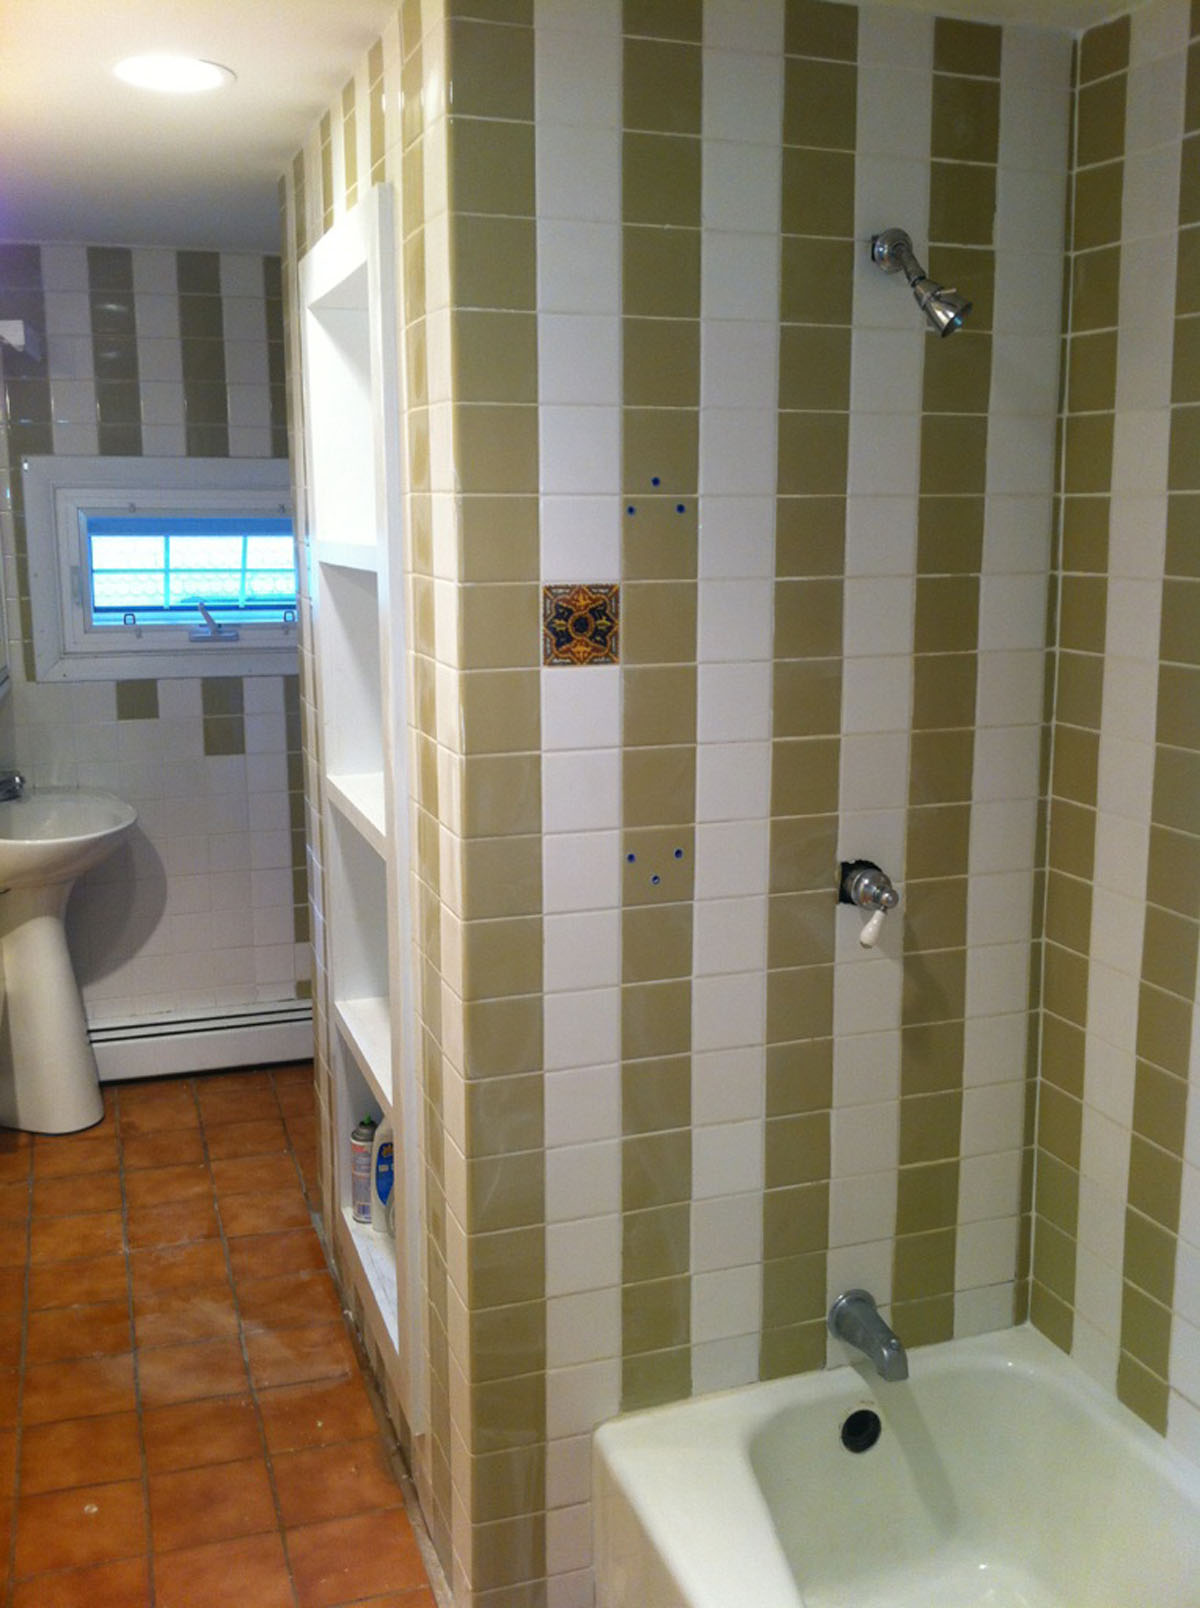 Floor to ceiling green and white striped tile in the bathroom before refinishing